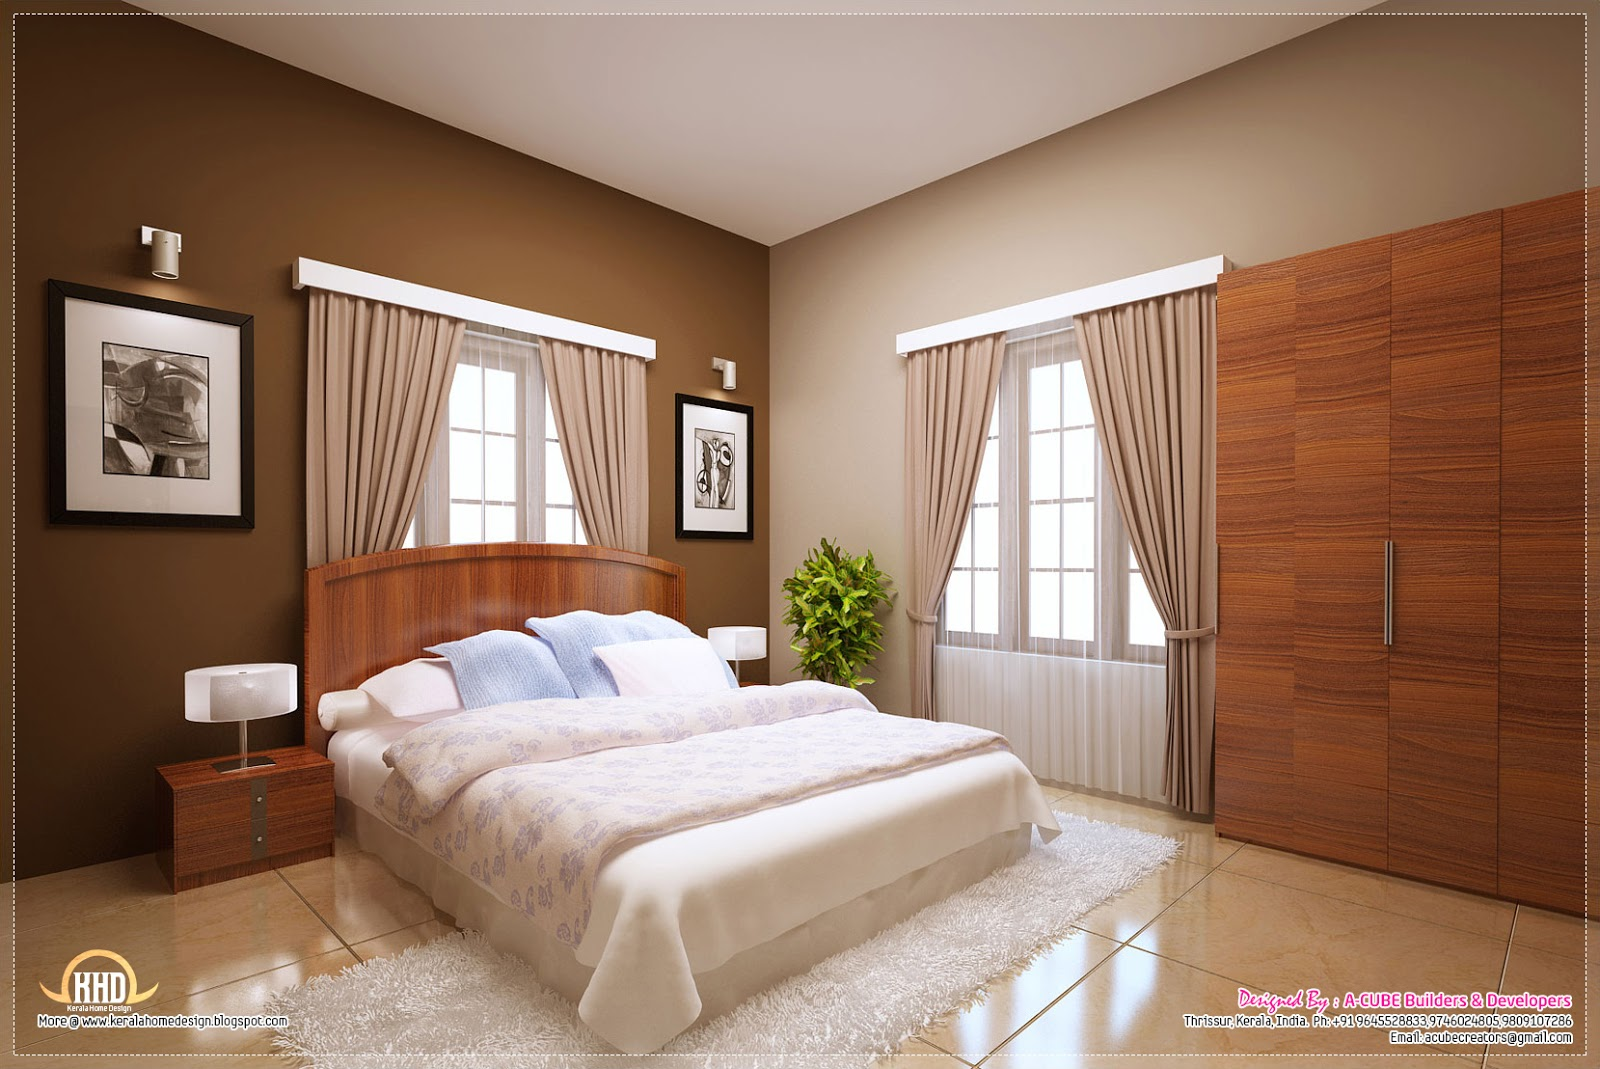 Awesome interior decoration ideas house design plans for Bedroom interior design